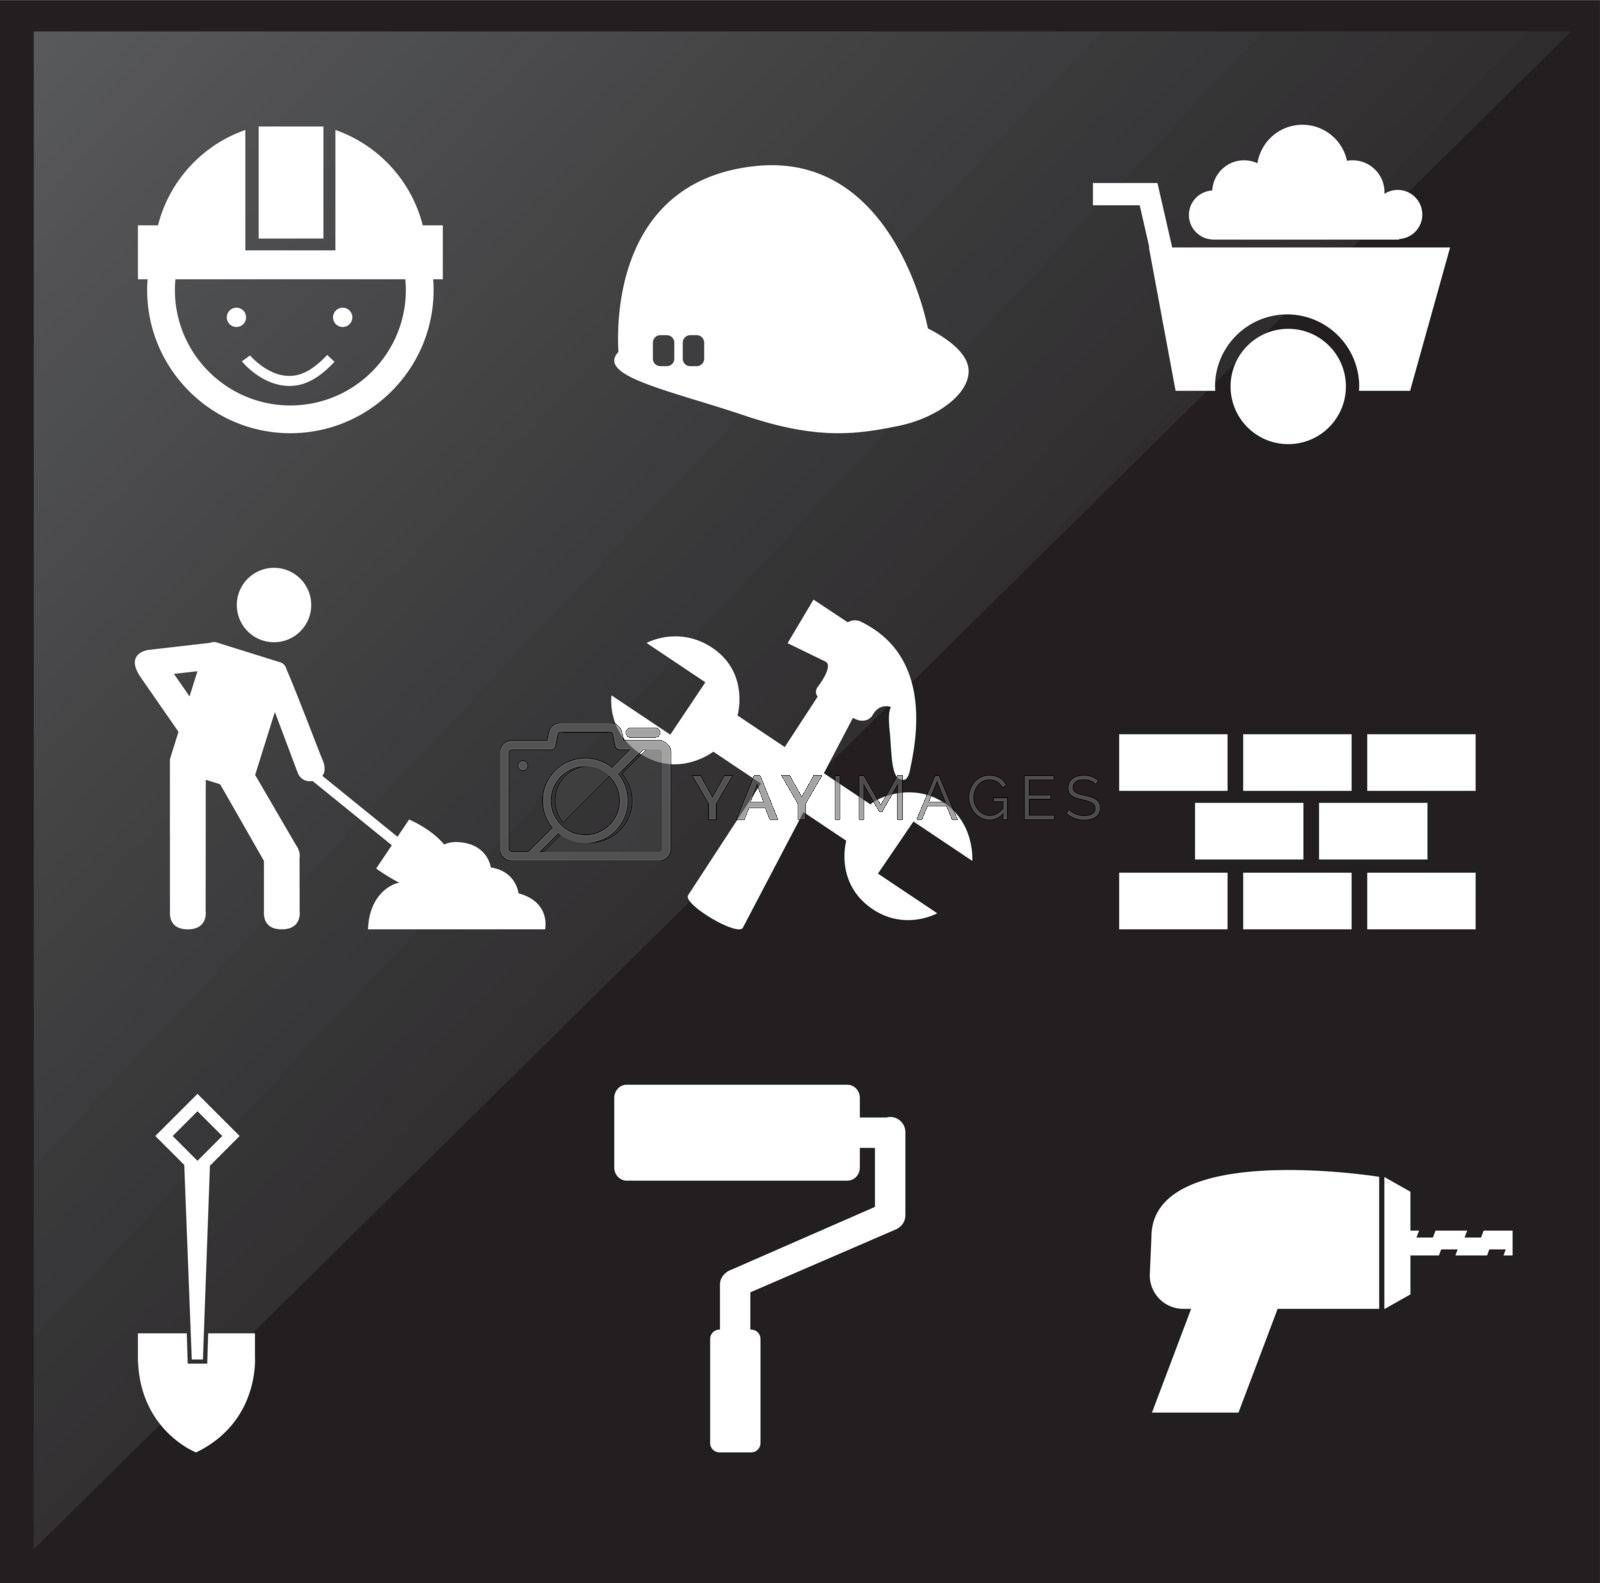 under construction icons over black background